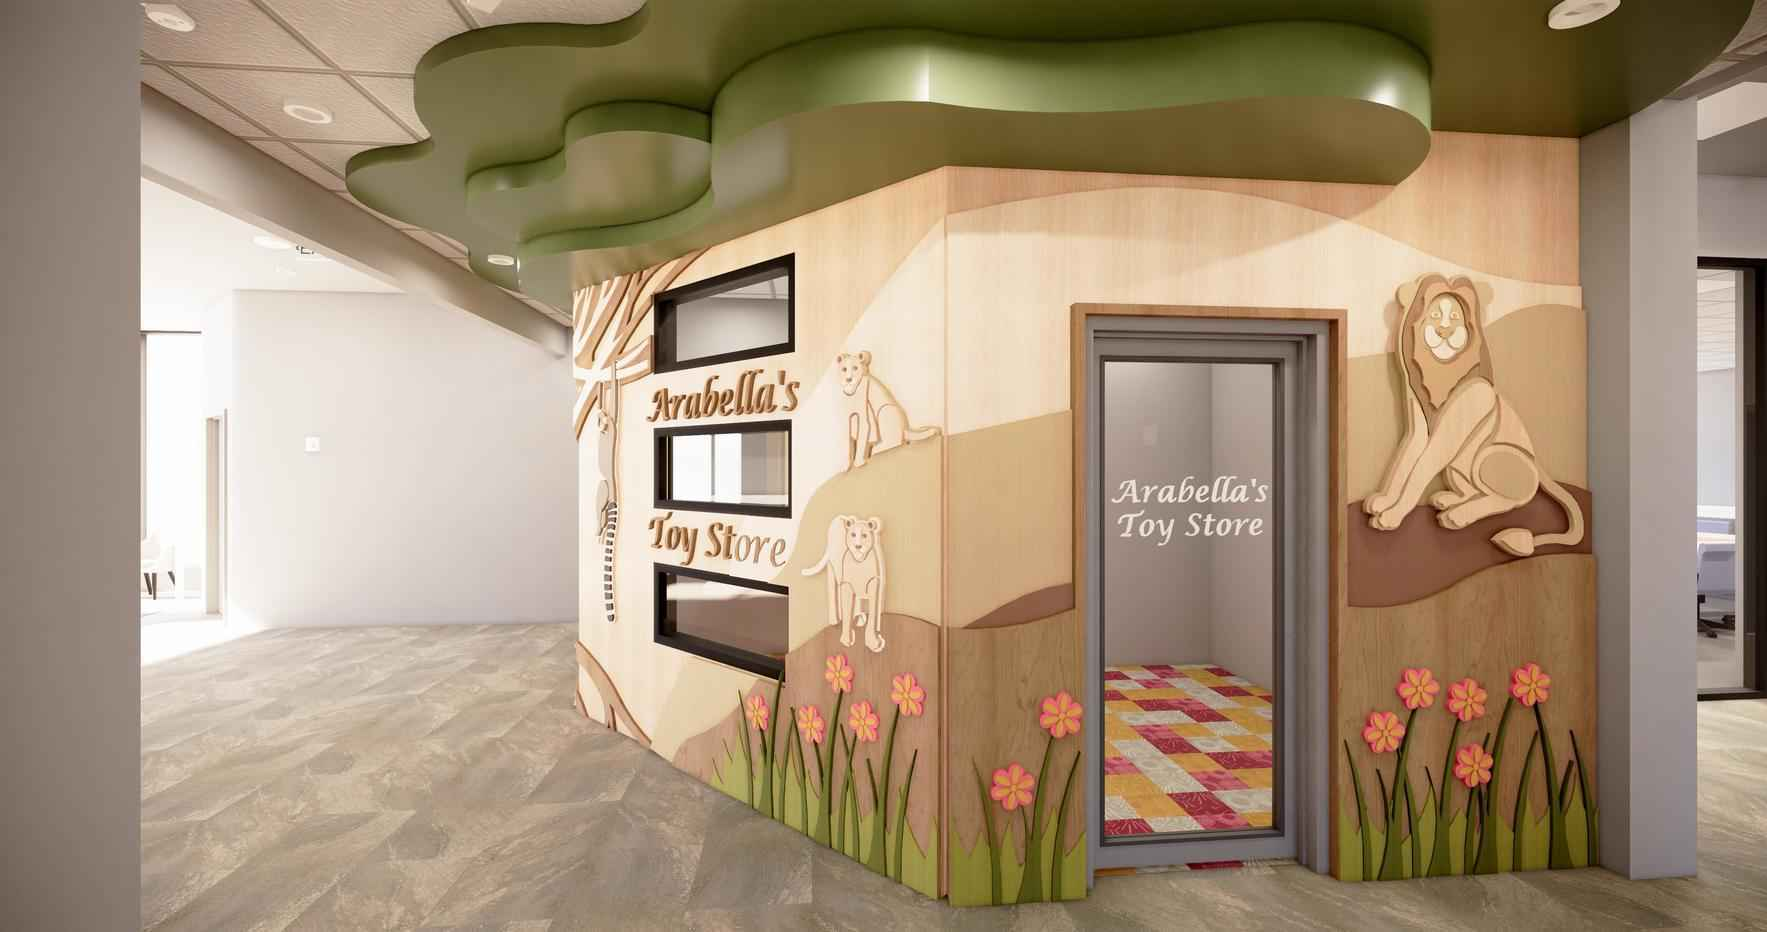 Help us build Arabella's Toy Store at Ronald McDonald House image